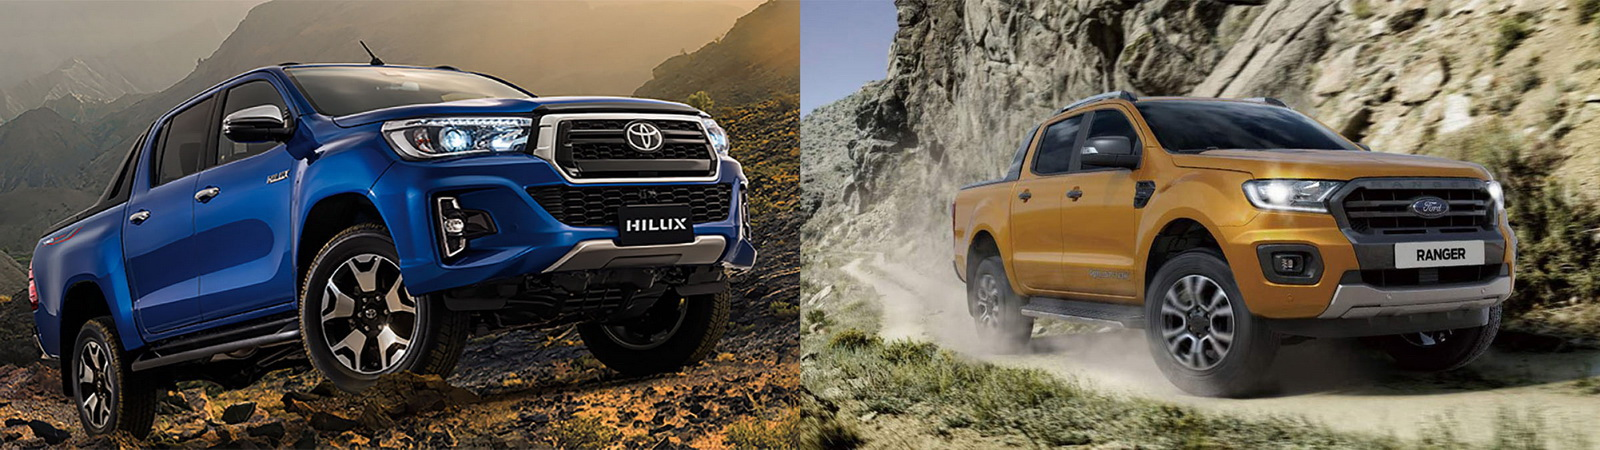 圖/Toyota Hilux 2.8與Ford Ranger 2.0 Bi-Turbo Wildtrak經典皮卡對決。